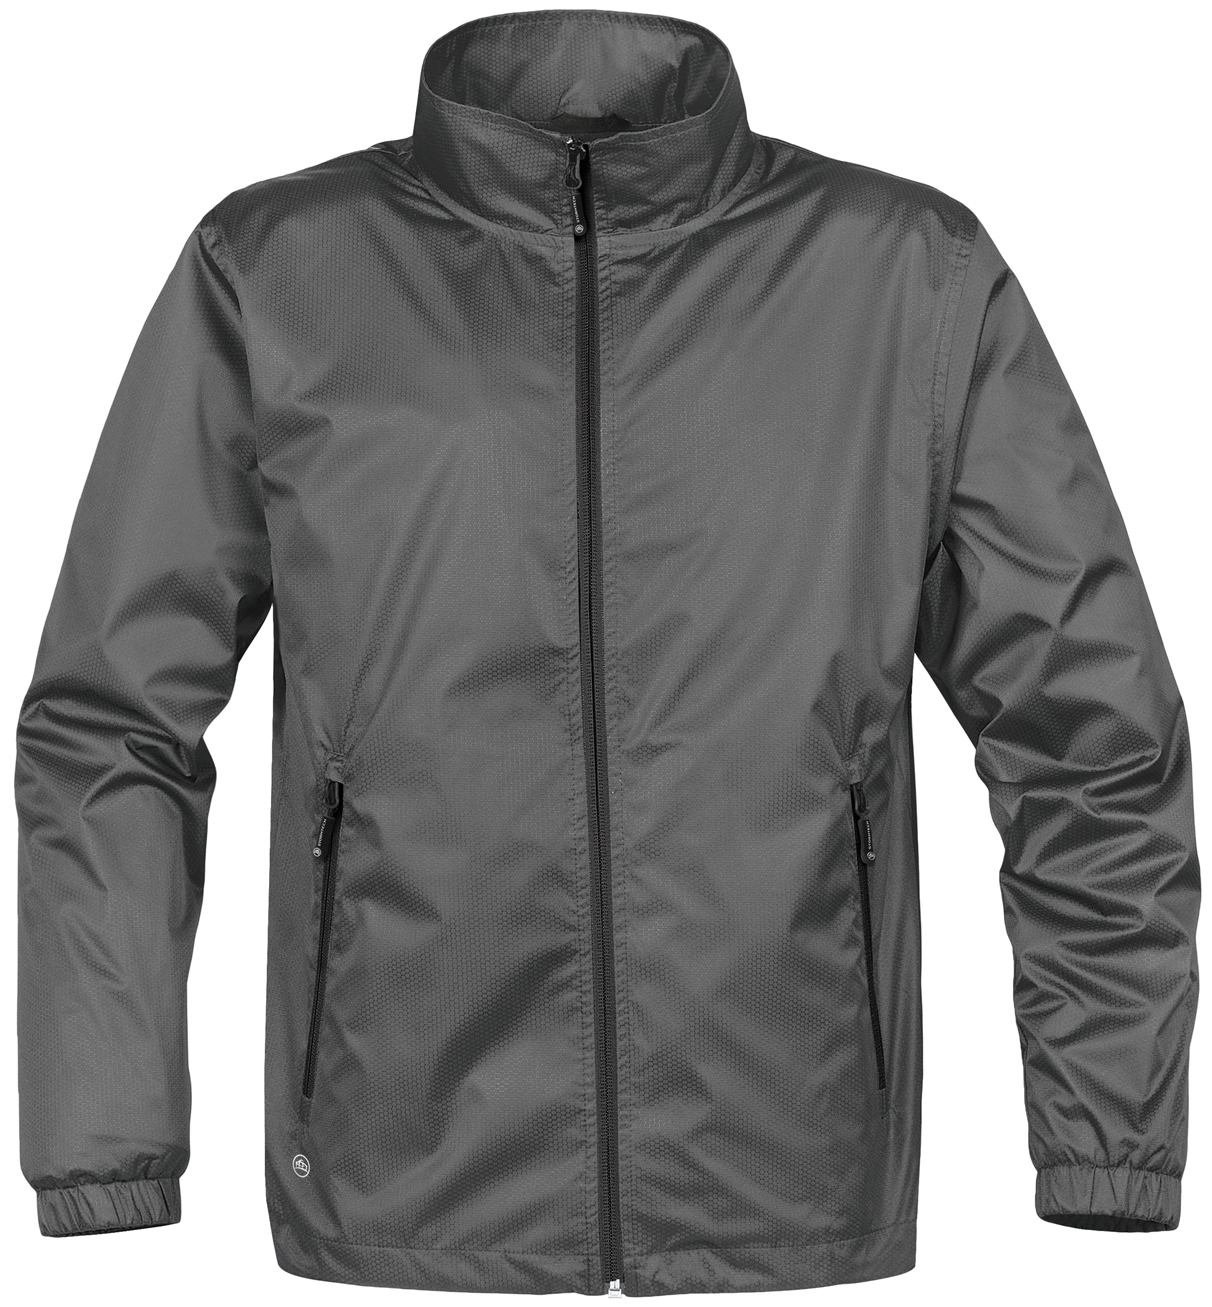 New Stormtech Mens Weather Proof Ultra Light Axis Shell Jacket Coat Size S XL